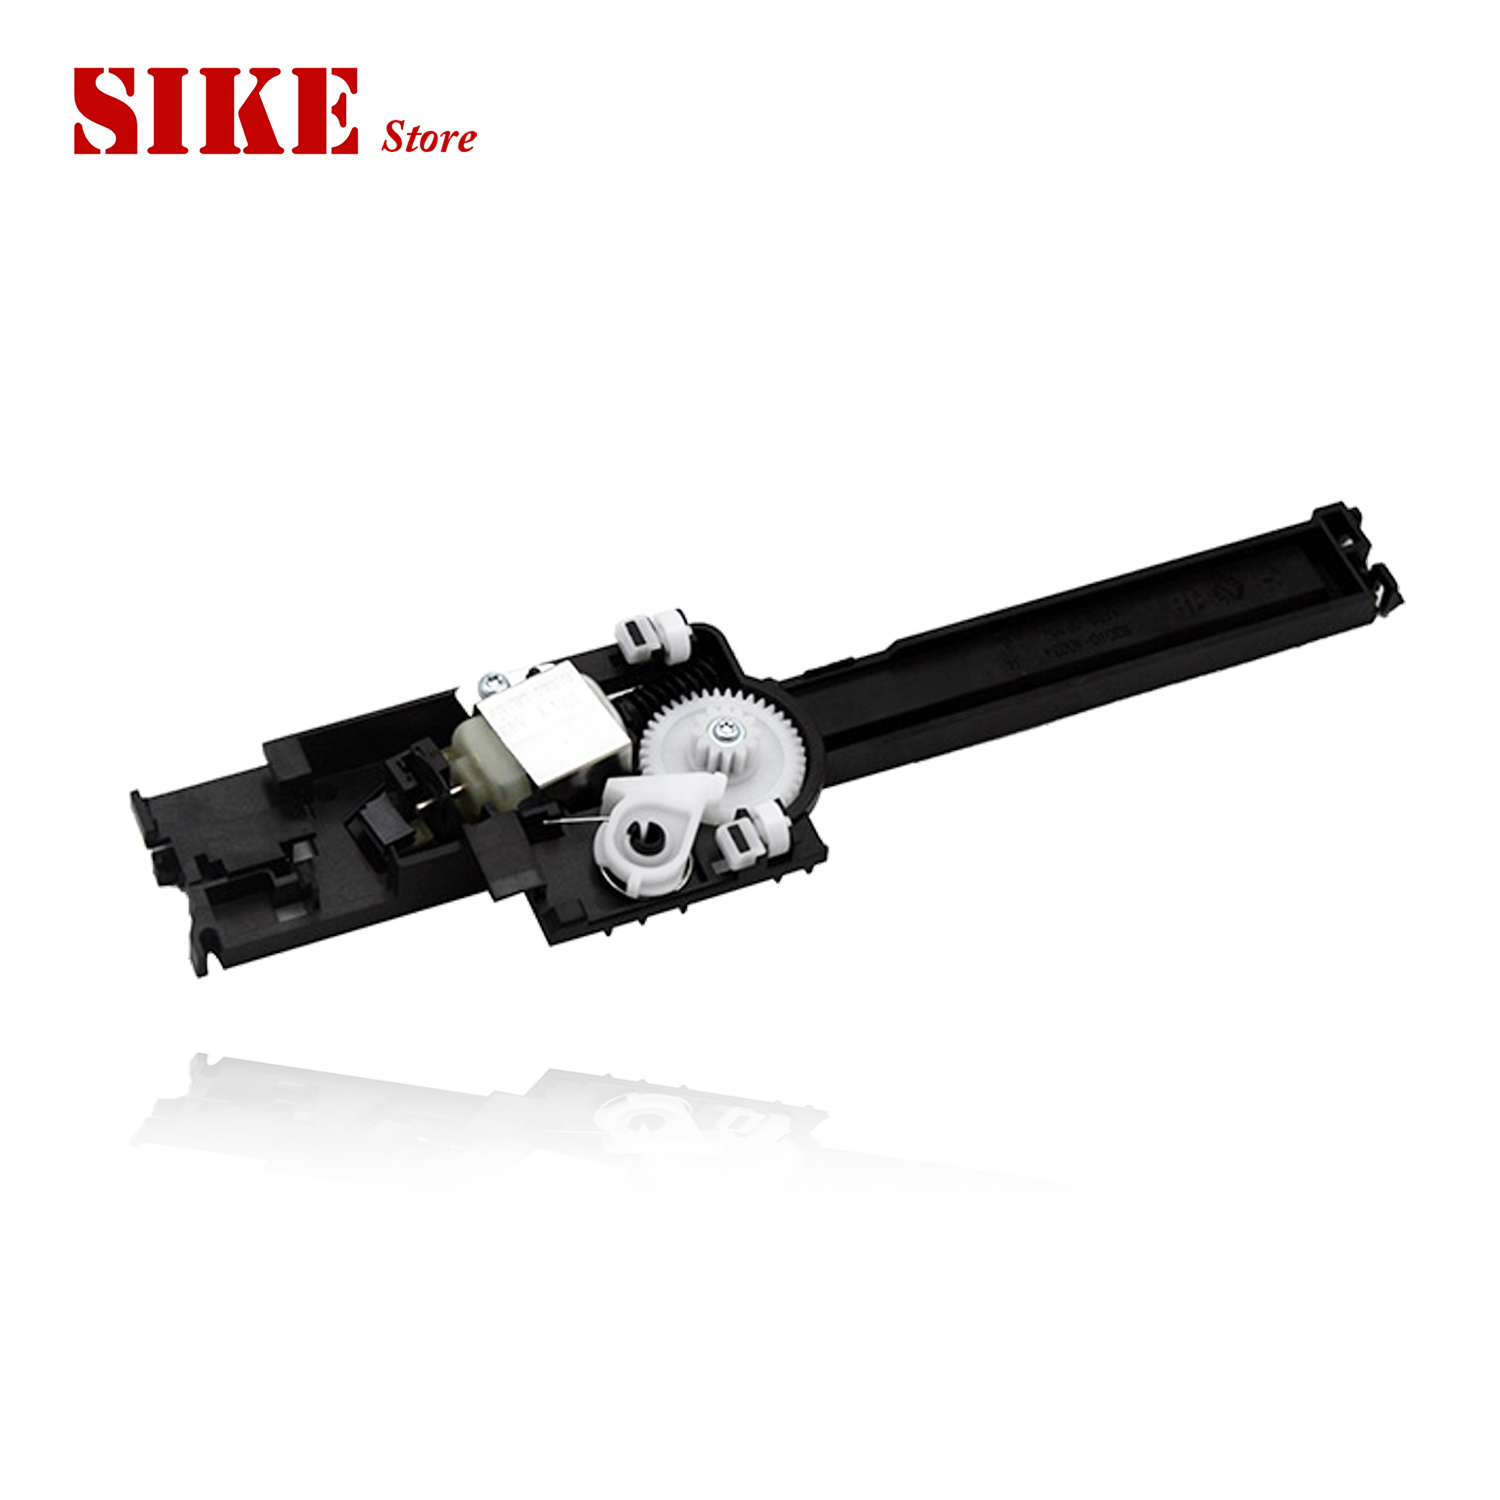 B3Q10-40034 Scanning For HP M274 M277 M377 M477 M274n M277dw M277n M377dw M477fdn M477fdw M477fnw Scanner Scan Head Assembly(China)